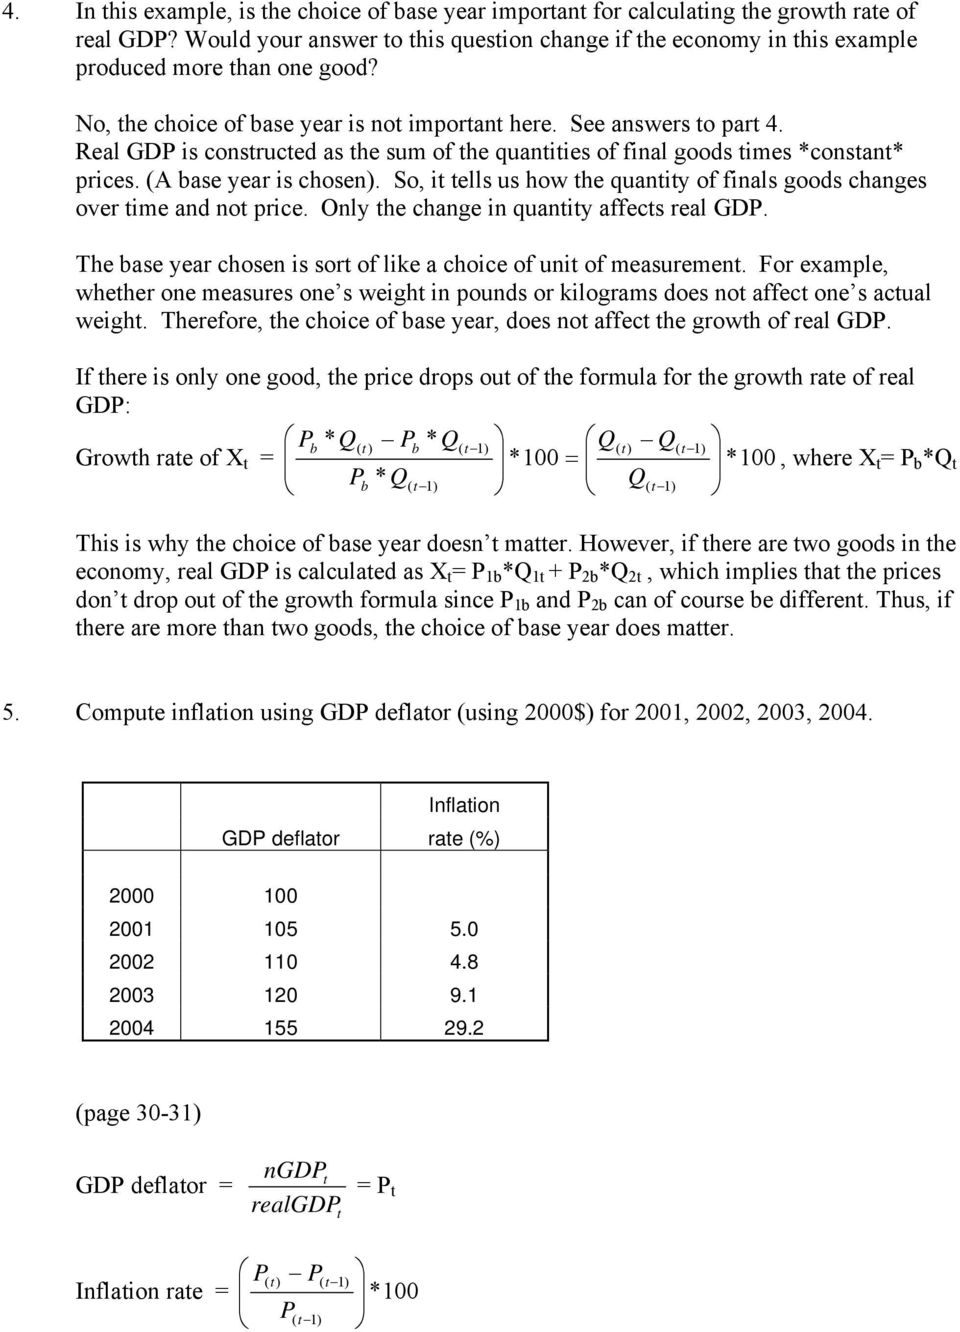 Real GDP is constructed as the sum of the quantities of final goods times *constant* prices. (A base year is chosen). So, it tells us how the quantity of finals goods changes over time and not price.